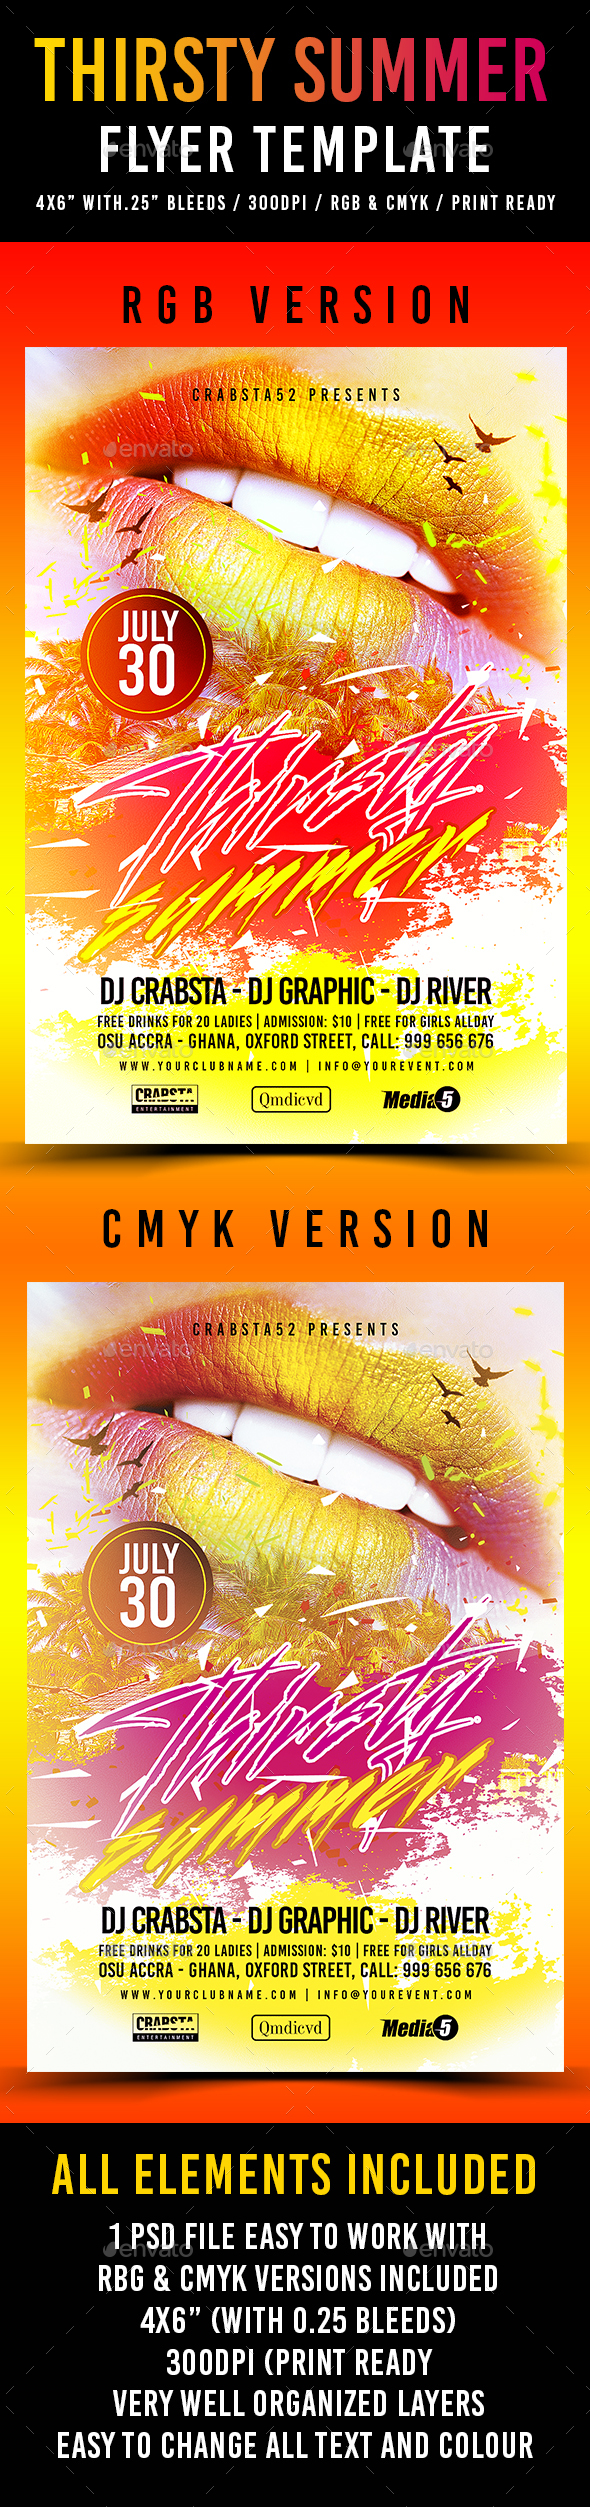 Thirsty Summer Flyer Template  - Flyers Print Templates